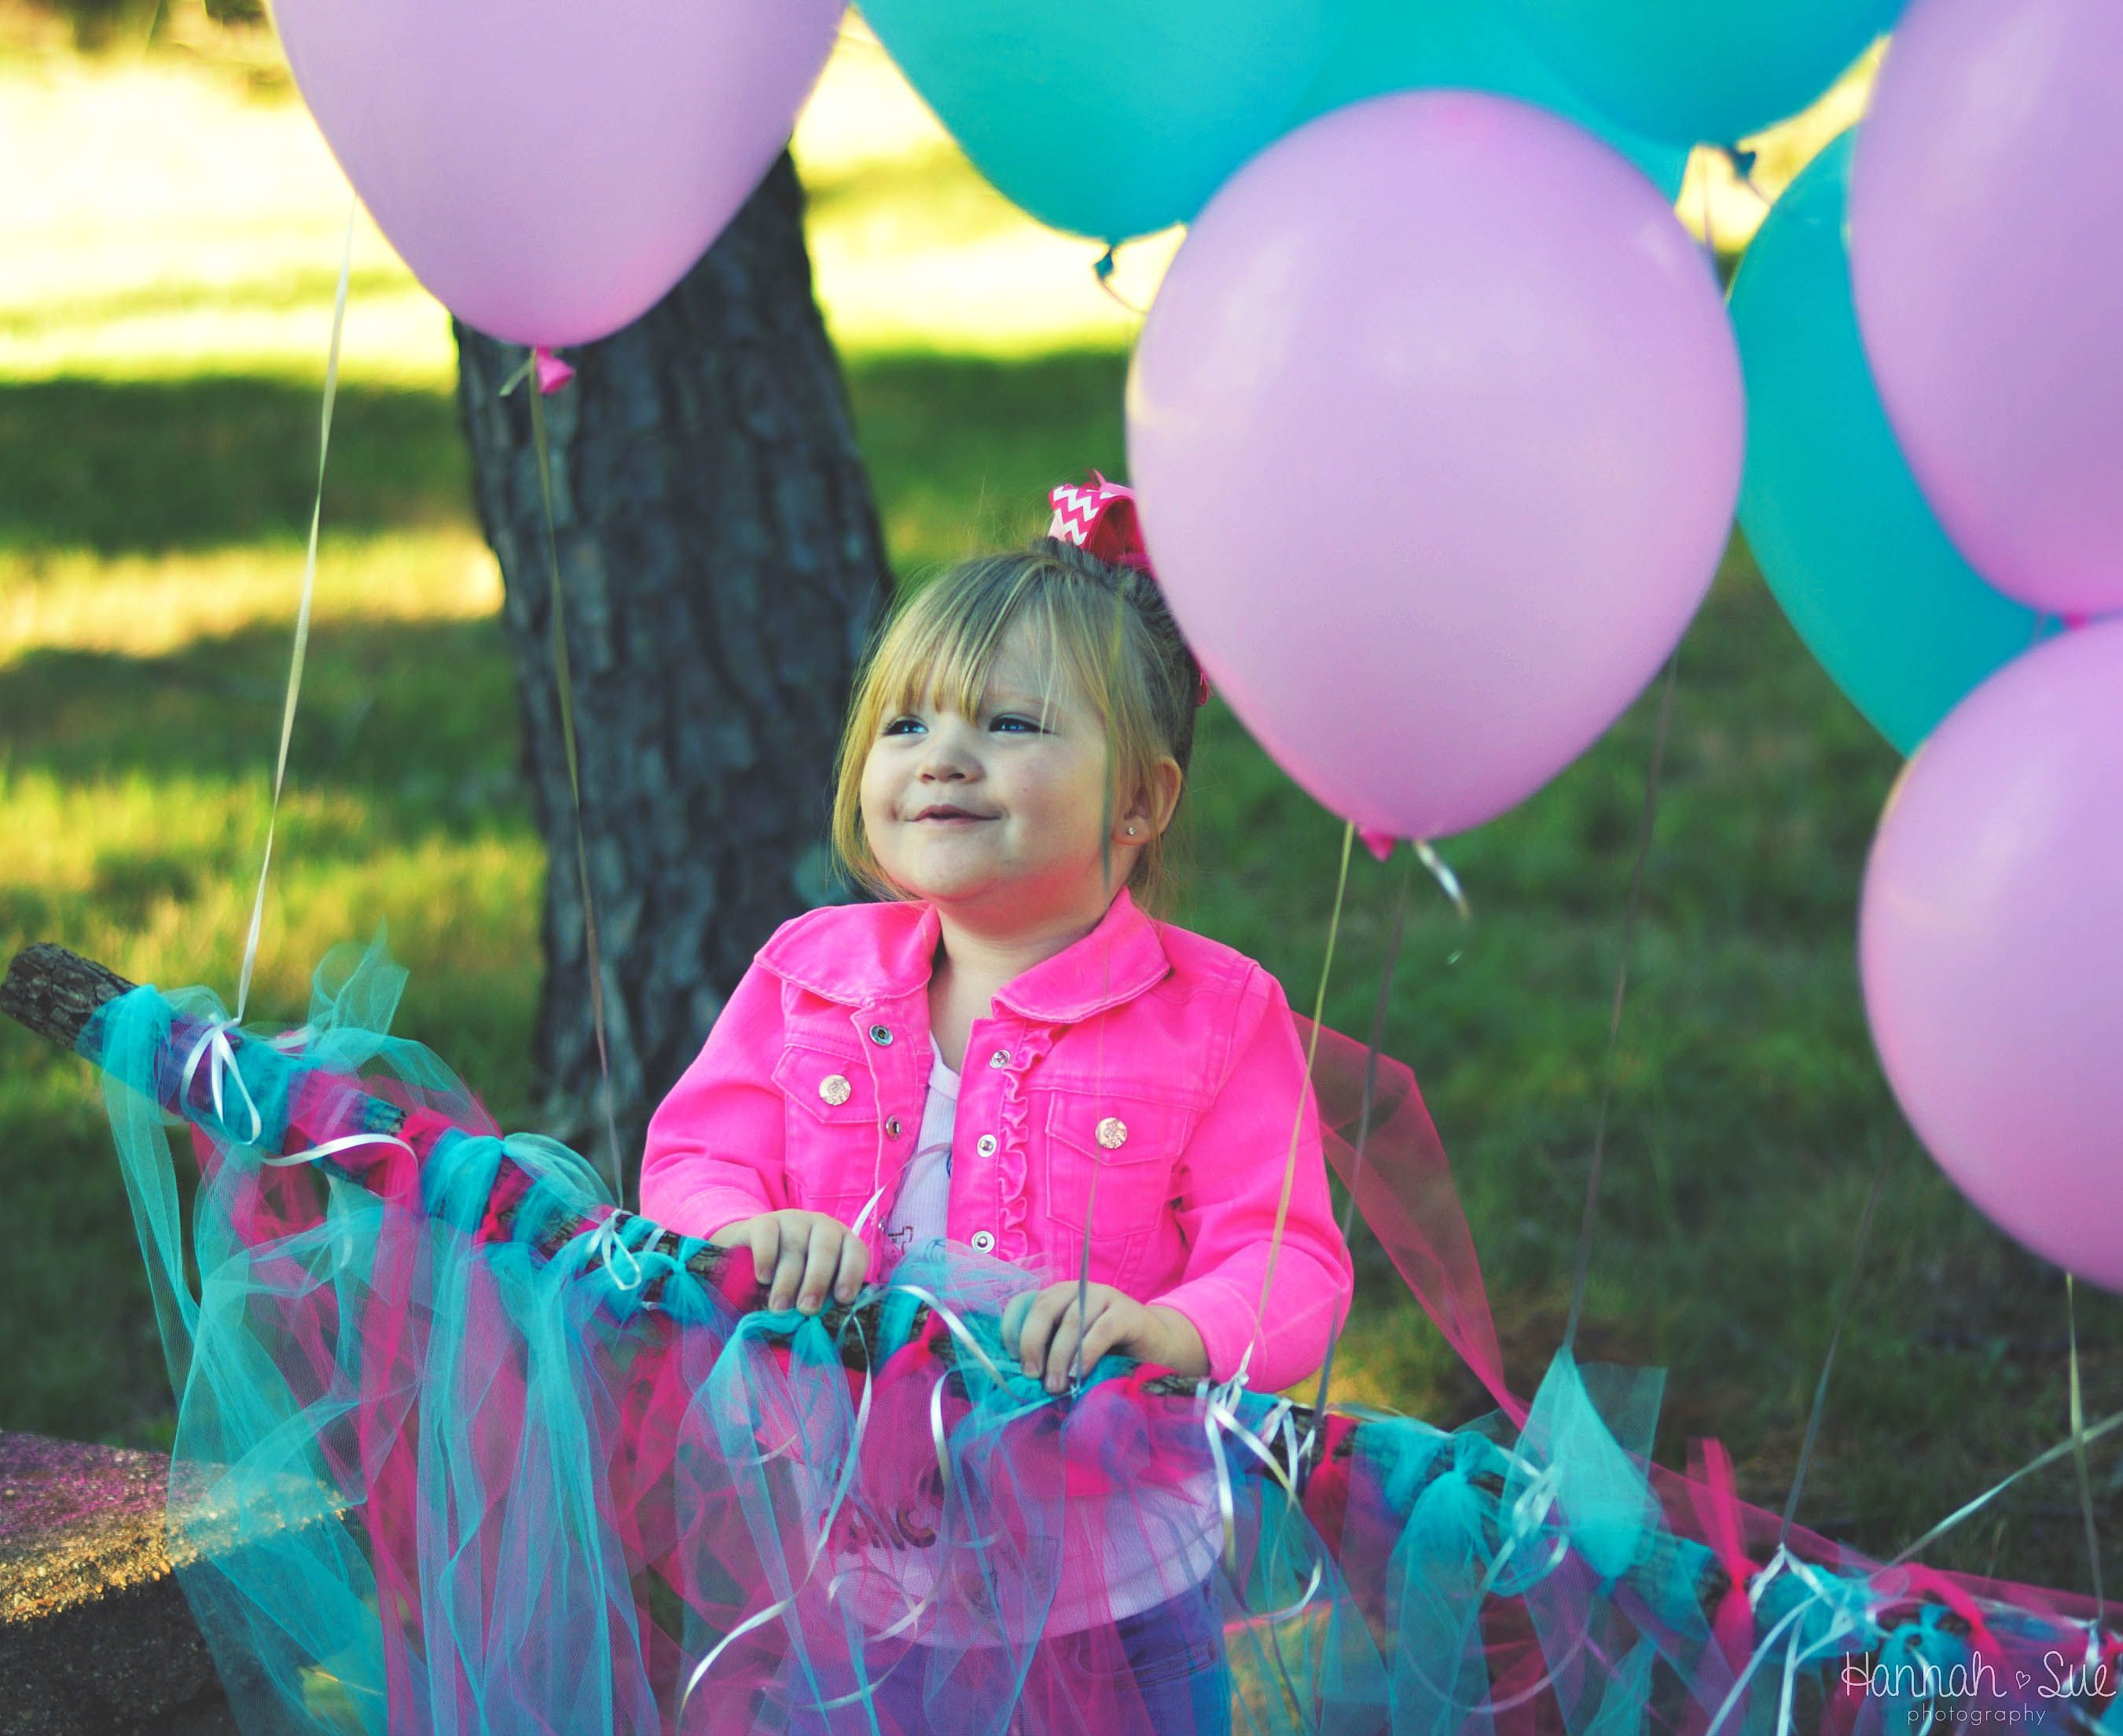 Hannah sue photography, Rolla, Missouri, two year pictures, two year old, outside, pink and blue, balloons, backyard, summer 2016, toddler, cute outfits, hannahulbrich, photo ideas, two year old photoshoot, pink and teal Photoshoot, two year old picture idea, posing ideas